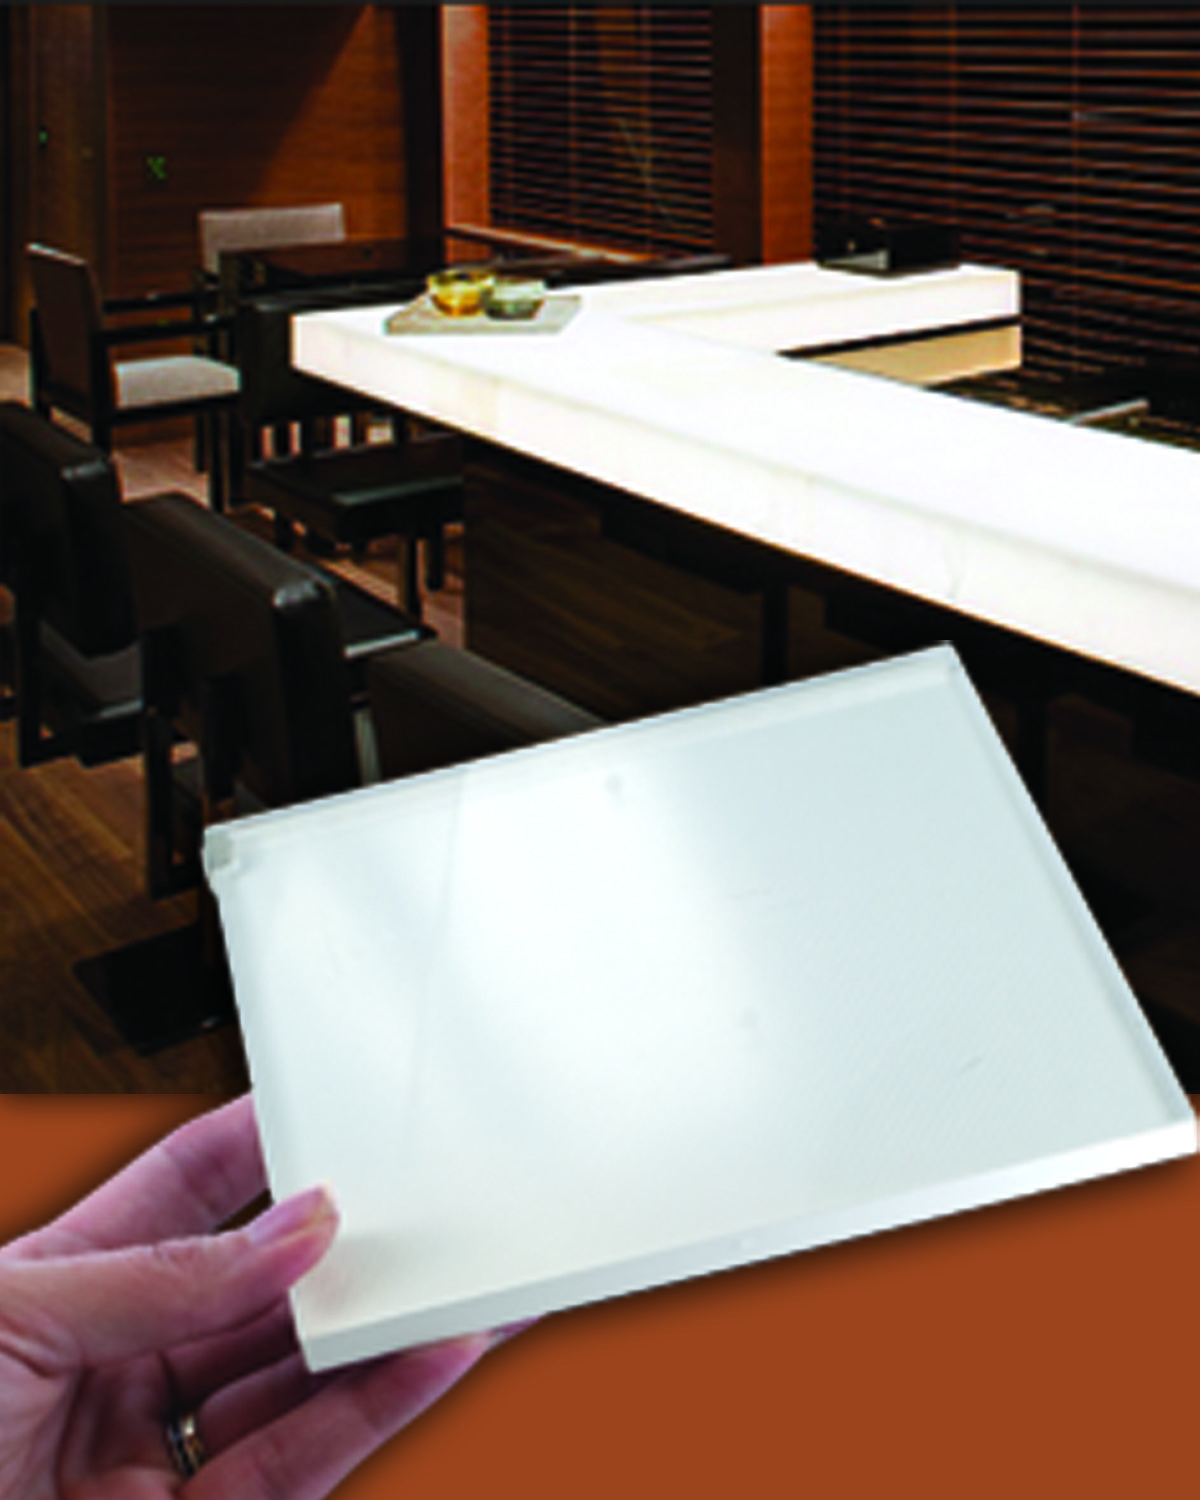 Ideal For Use In Tight Applications Outwater S 5 16th Inch Thick Ul Approved Nova Sheet Led Backlighting Pane Dream Home Design Plastic Industry Backlighting